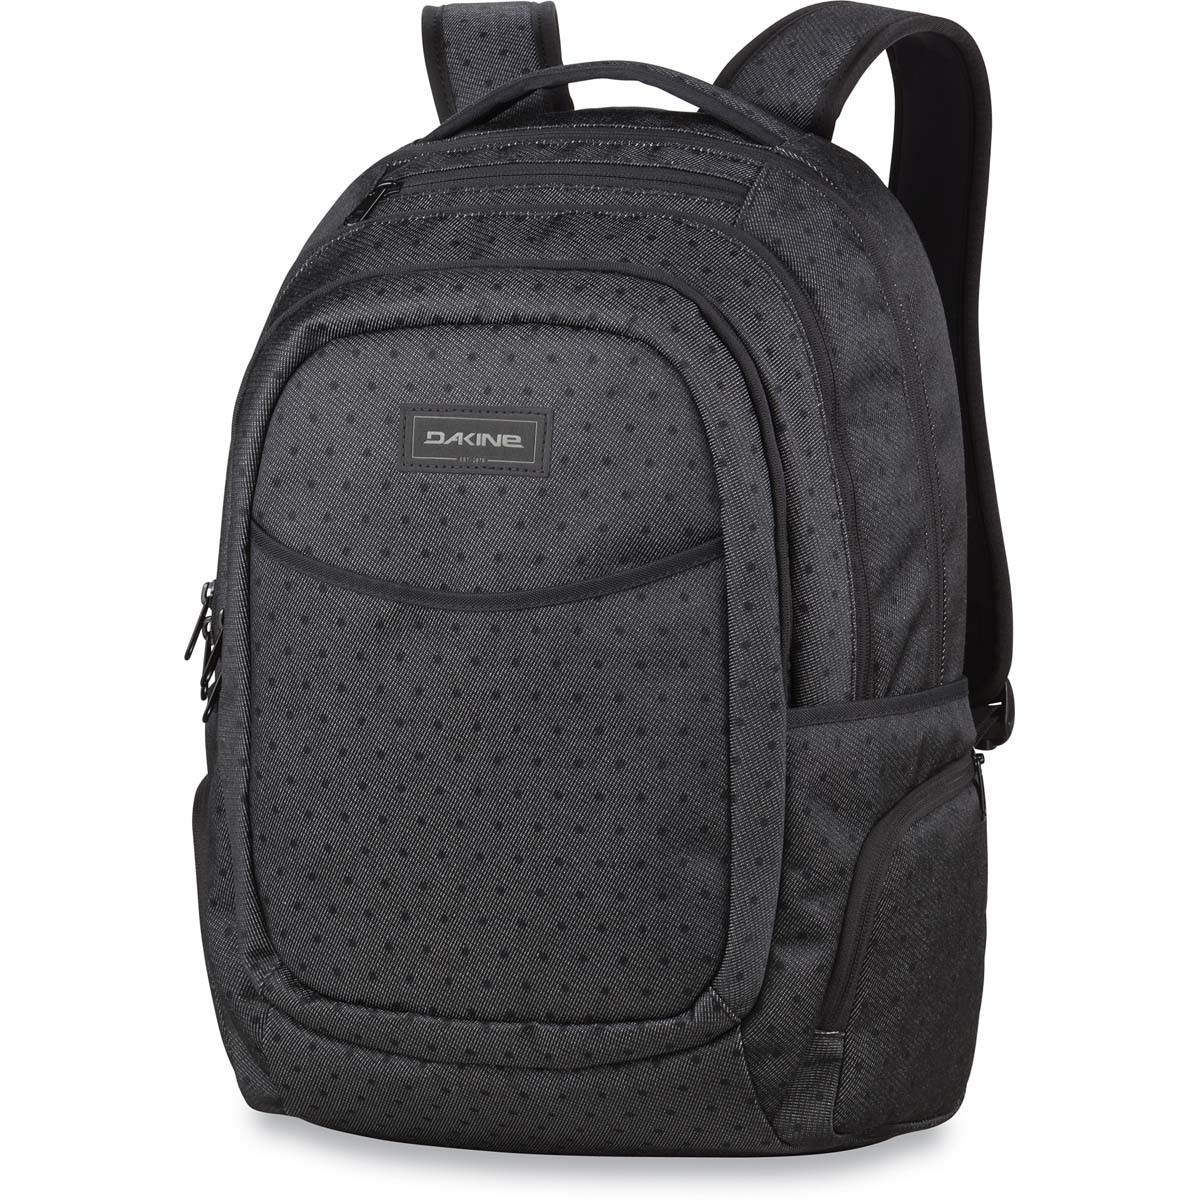 Dakine Backpacks bSsiVCN8